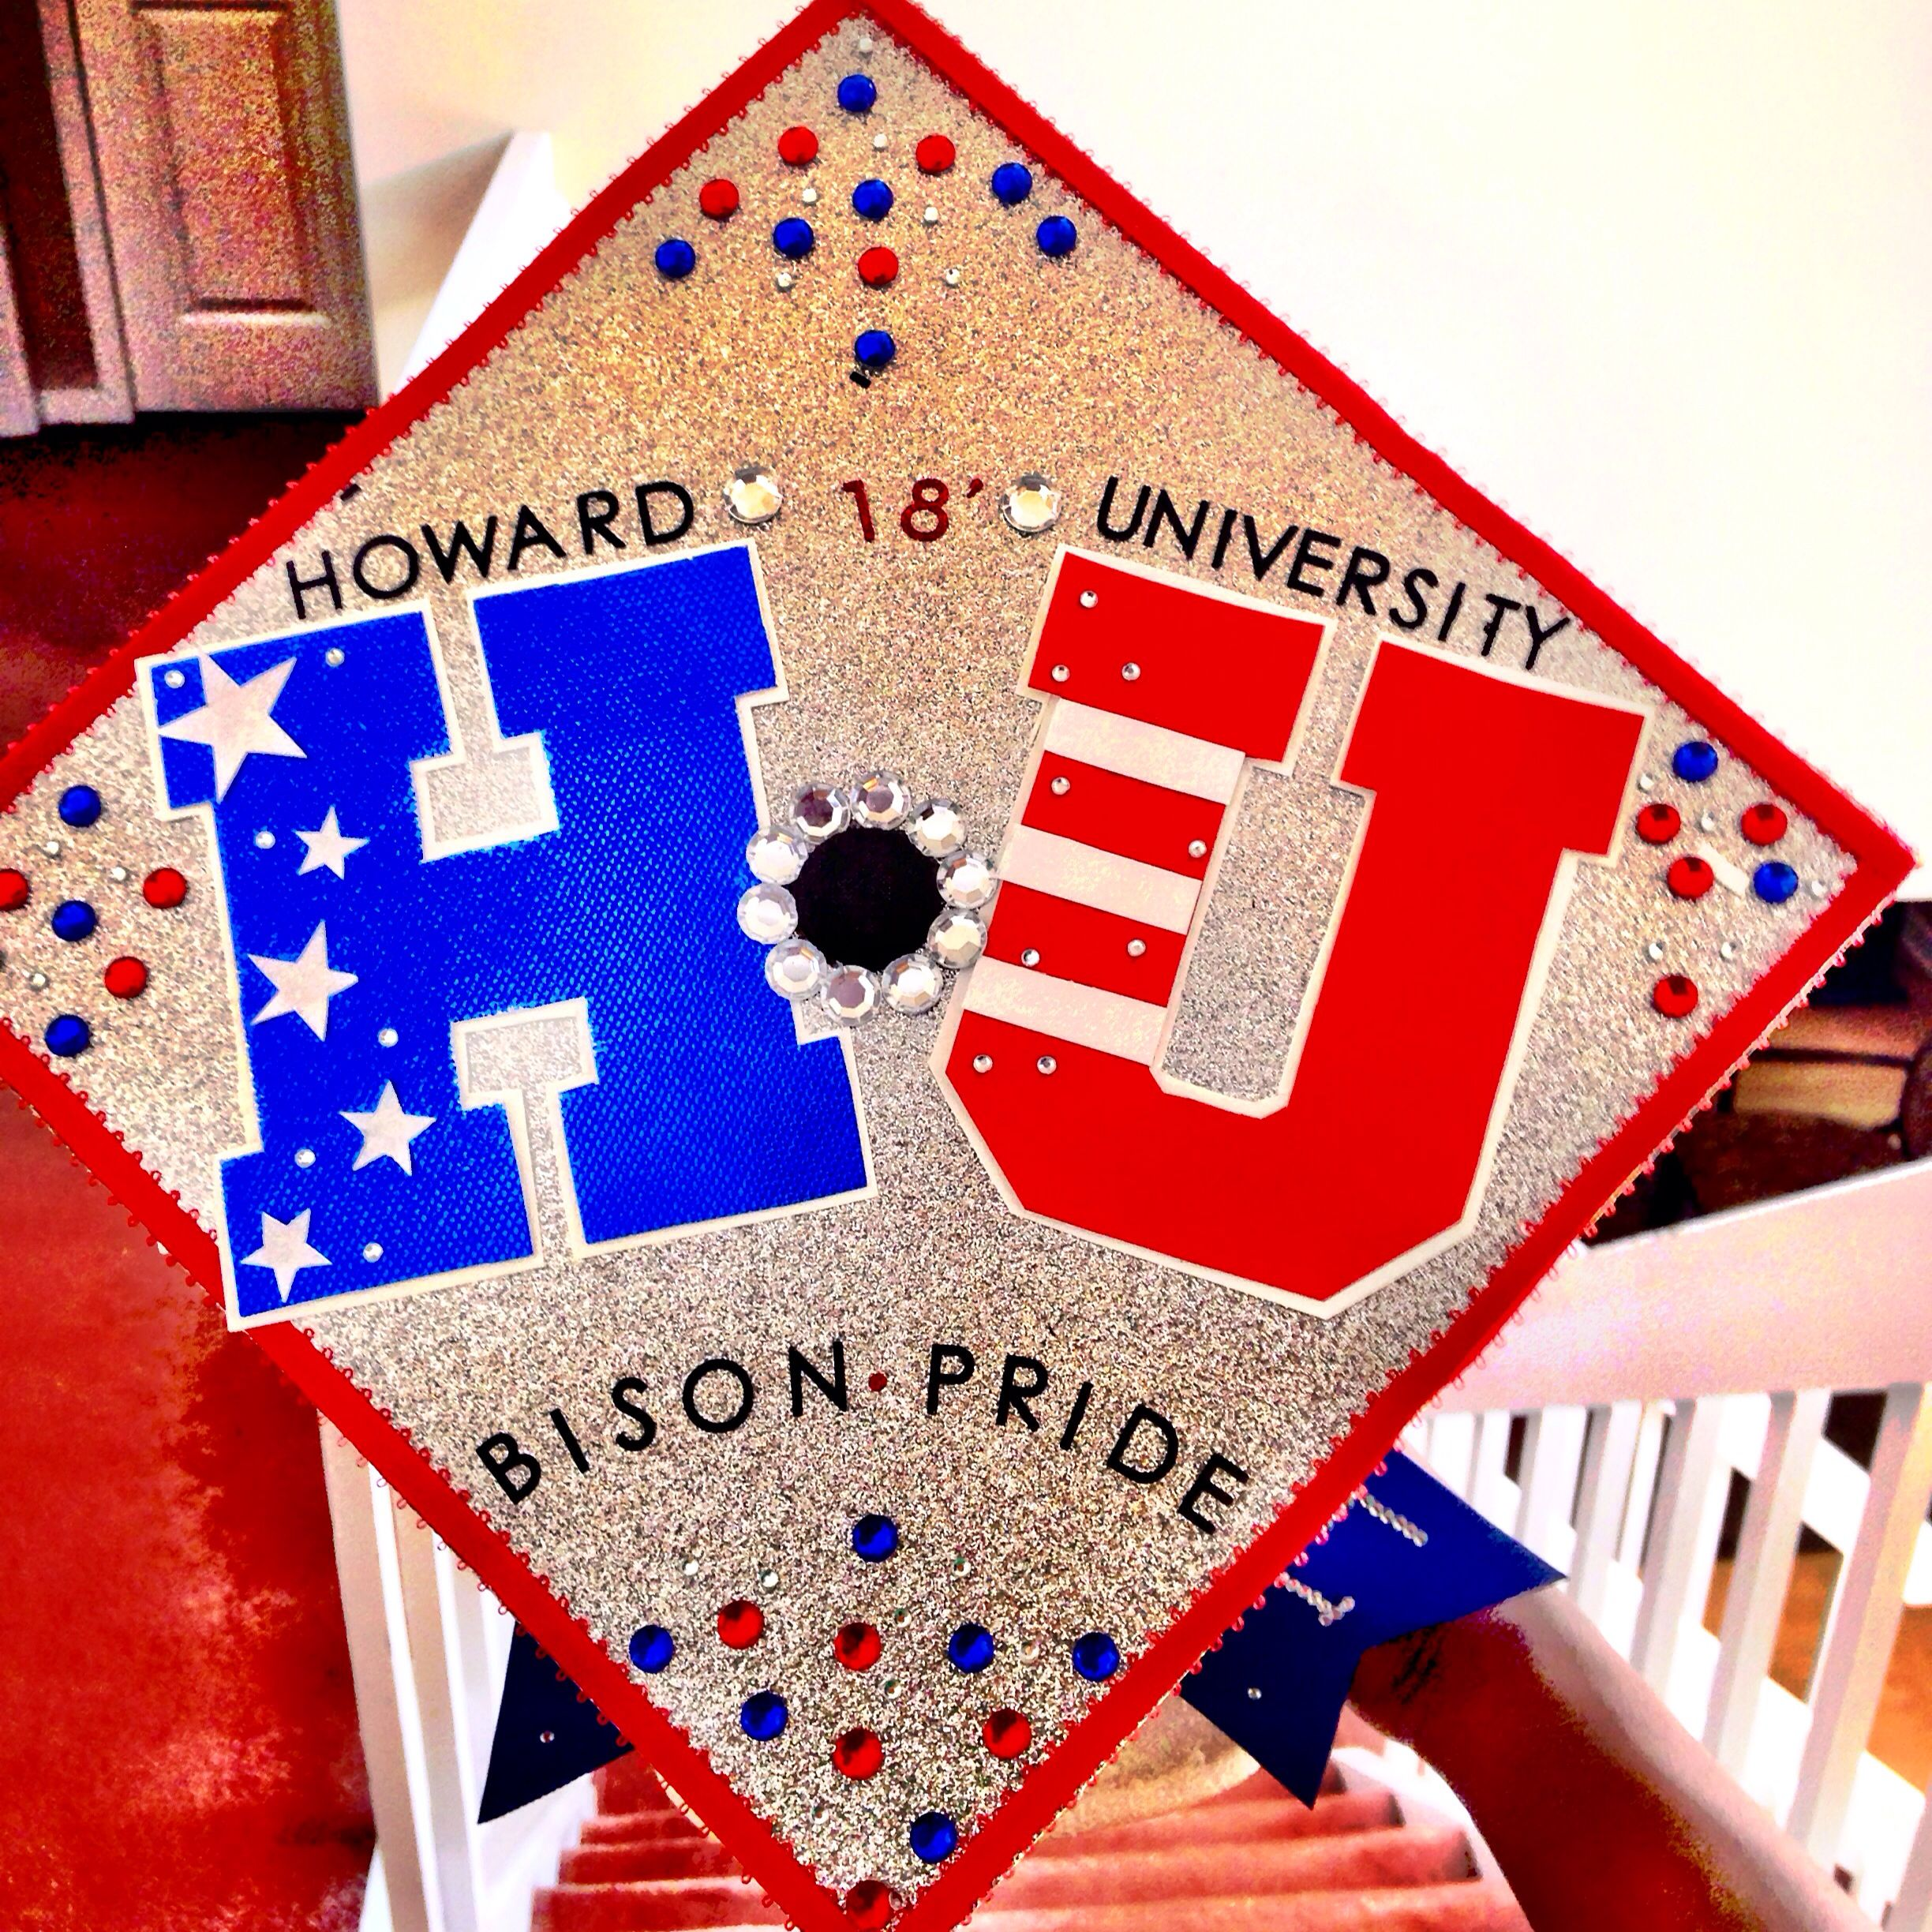 howard university essay university admission essay best images  howard university graduation cap getting ready for howard howard university graduation cap